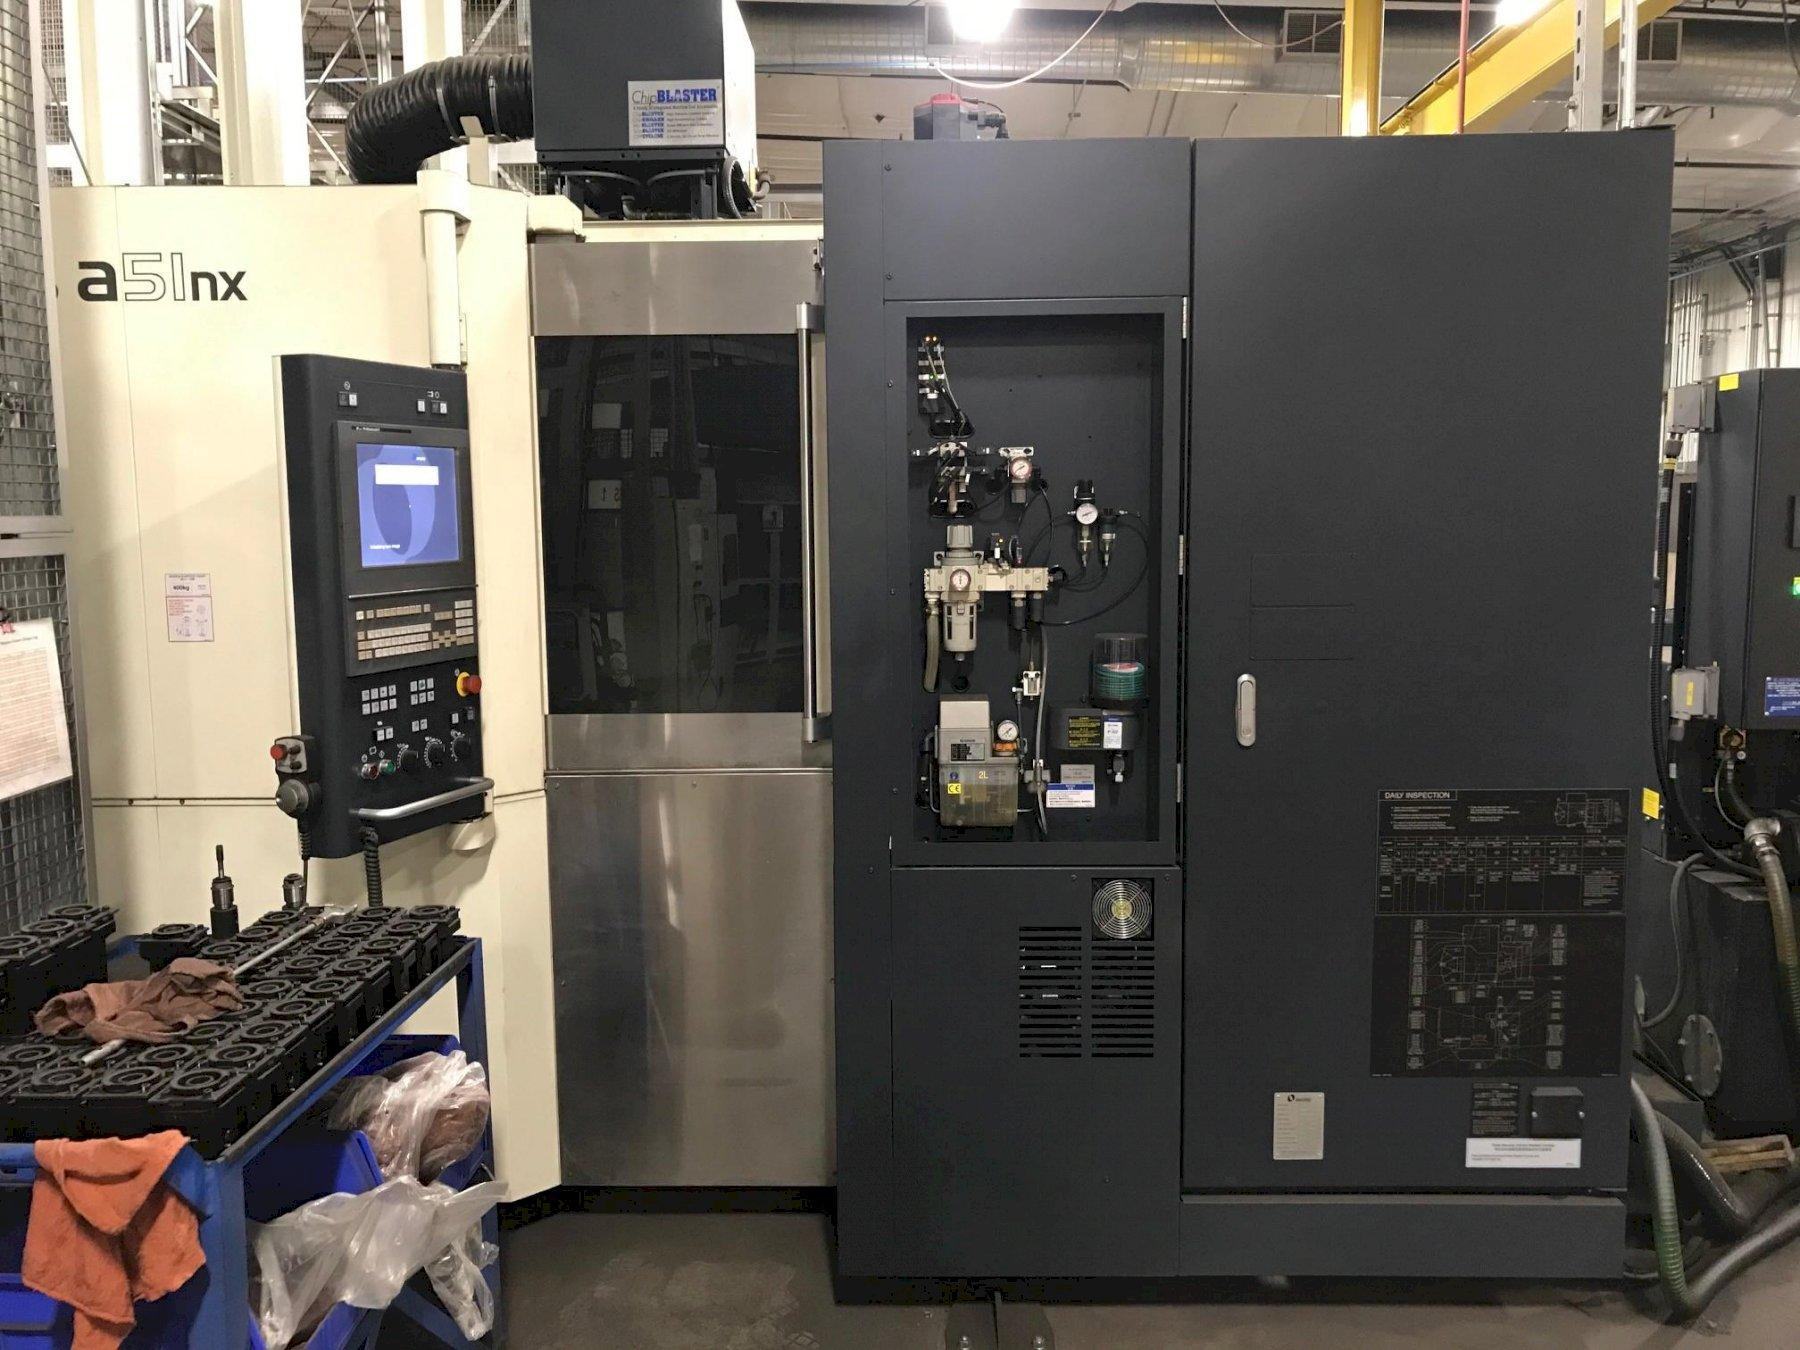 Makino a51nx Horizontal Machining Center with 66 Station Makino MMC2